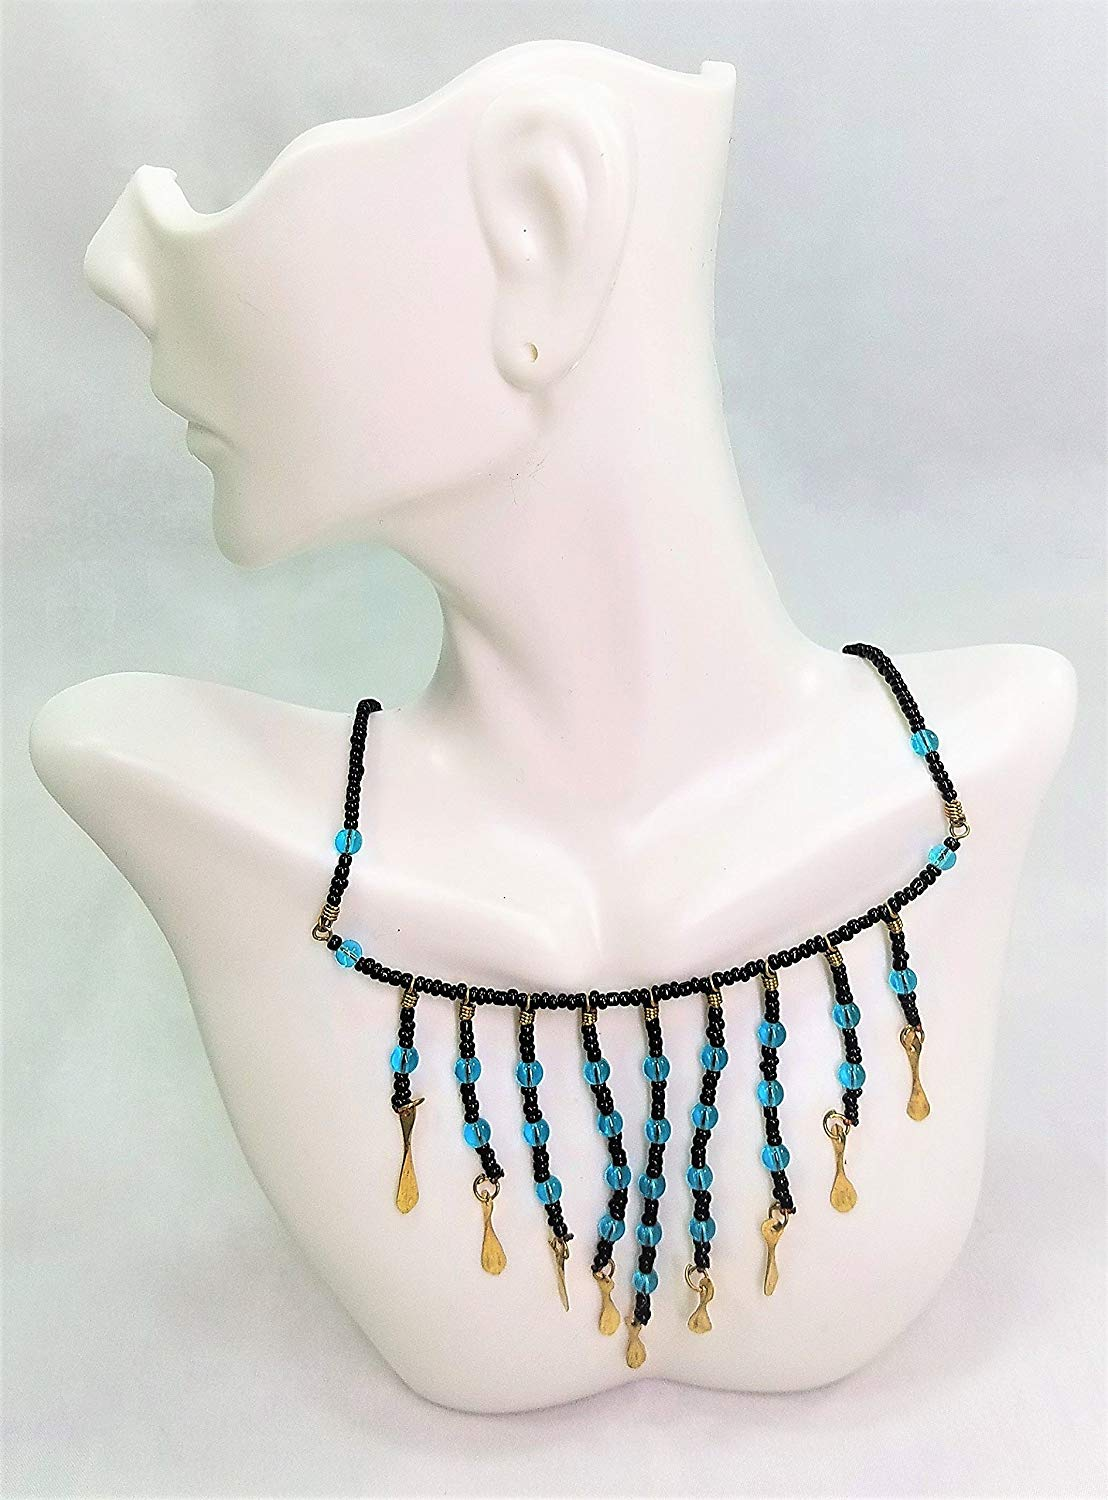 36cc6bbf653 Get Quotations · Blue and Black Masai Maasai Hanging Beaded Chains Necklace